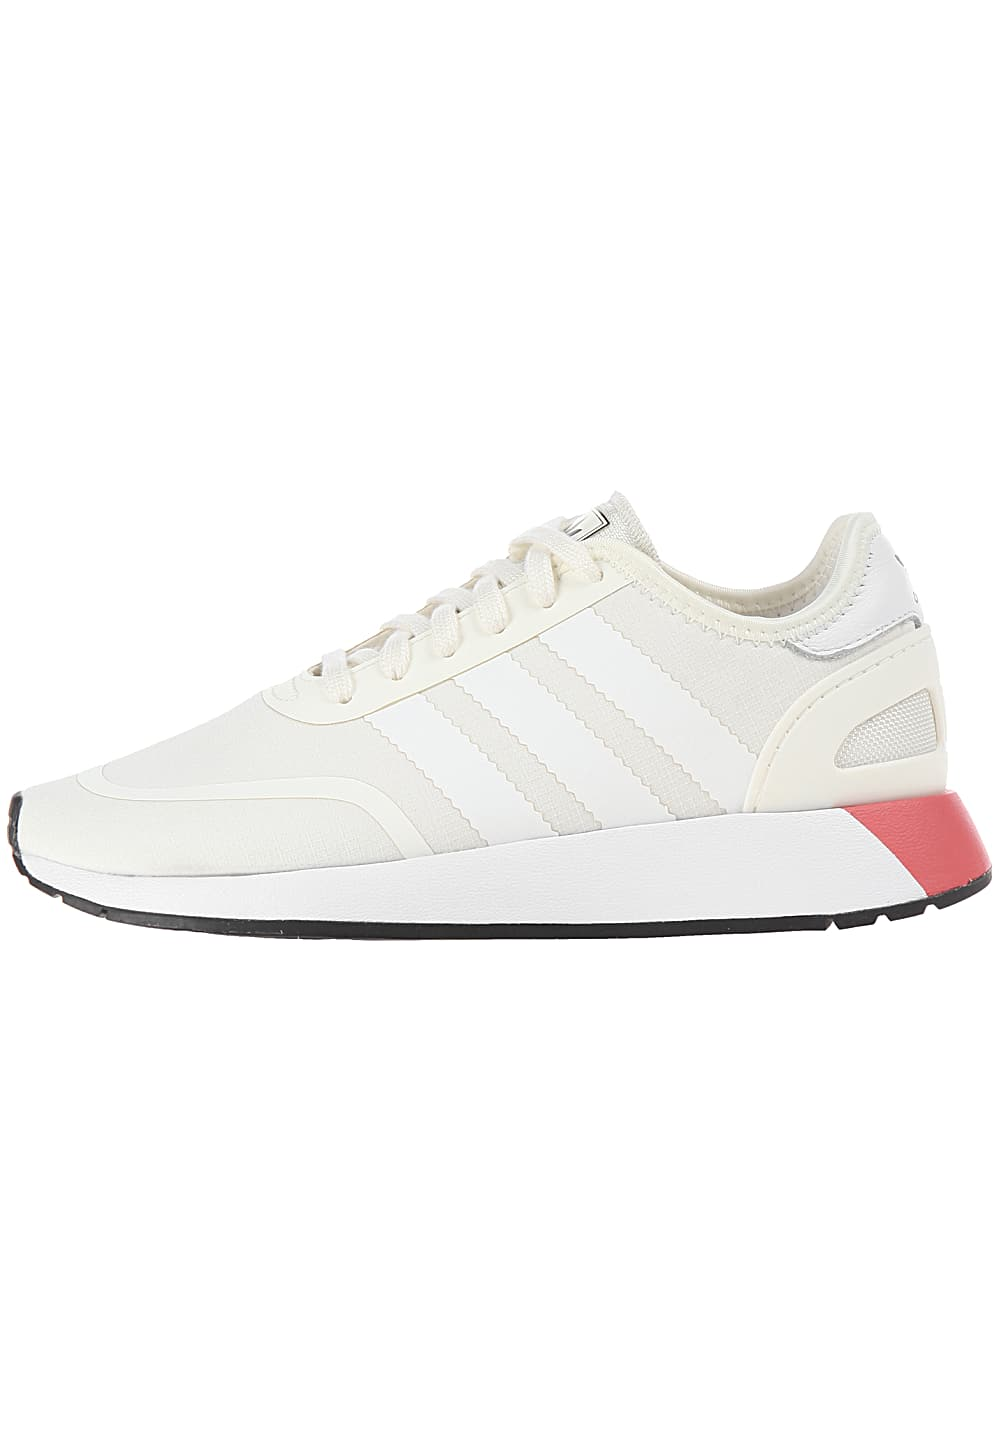 ADIDAS ORIGINALS N-5923 - Sneakers voor Dames - Wit - Planet ...